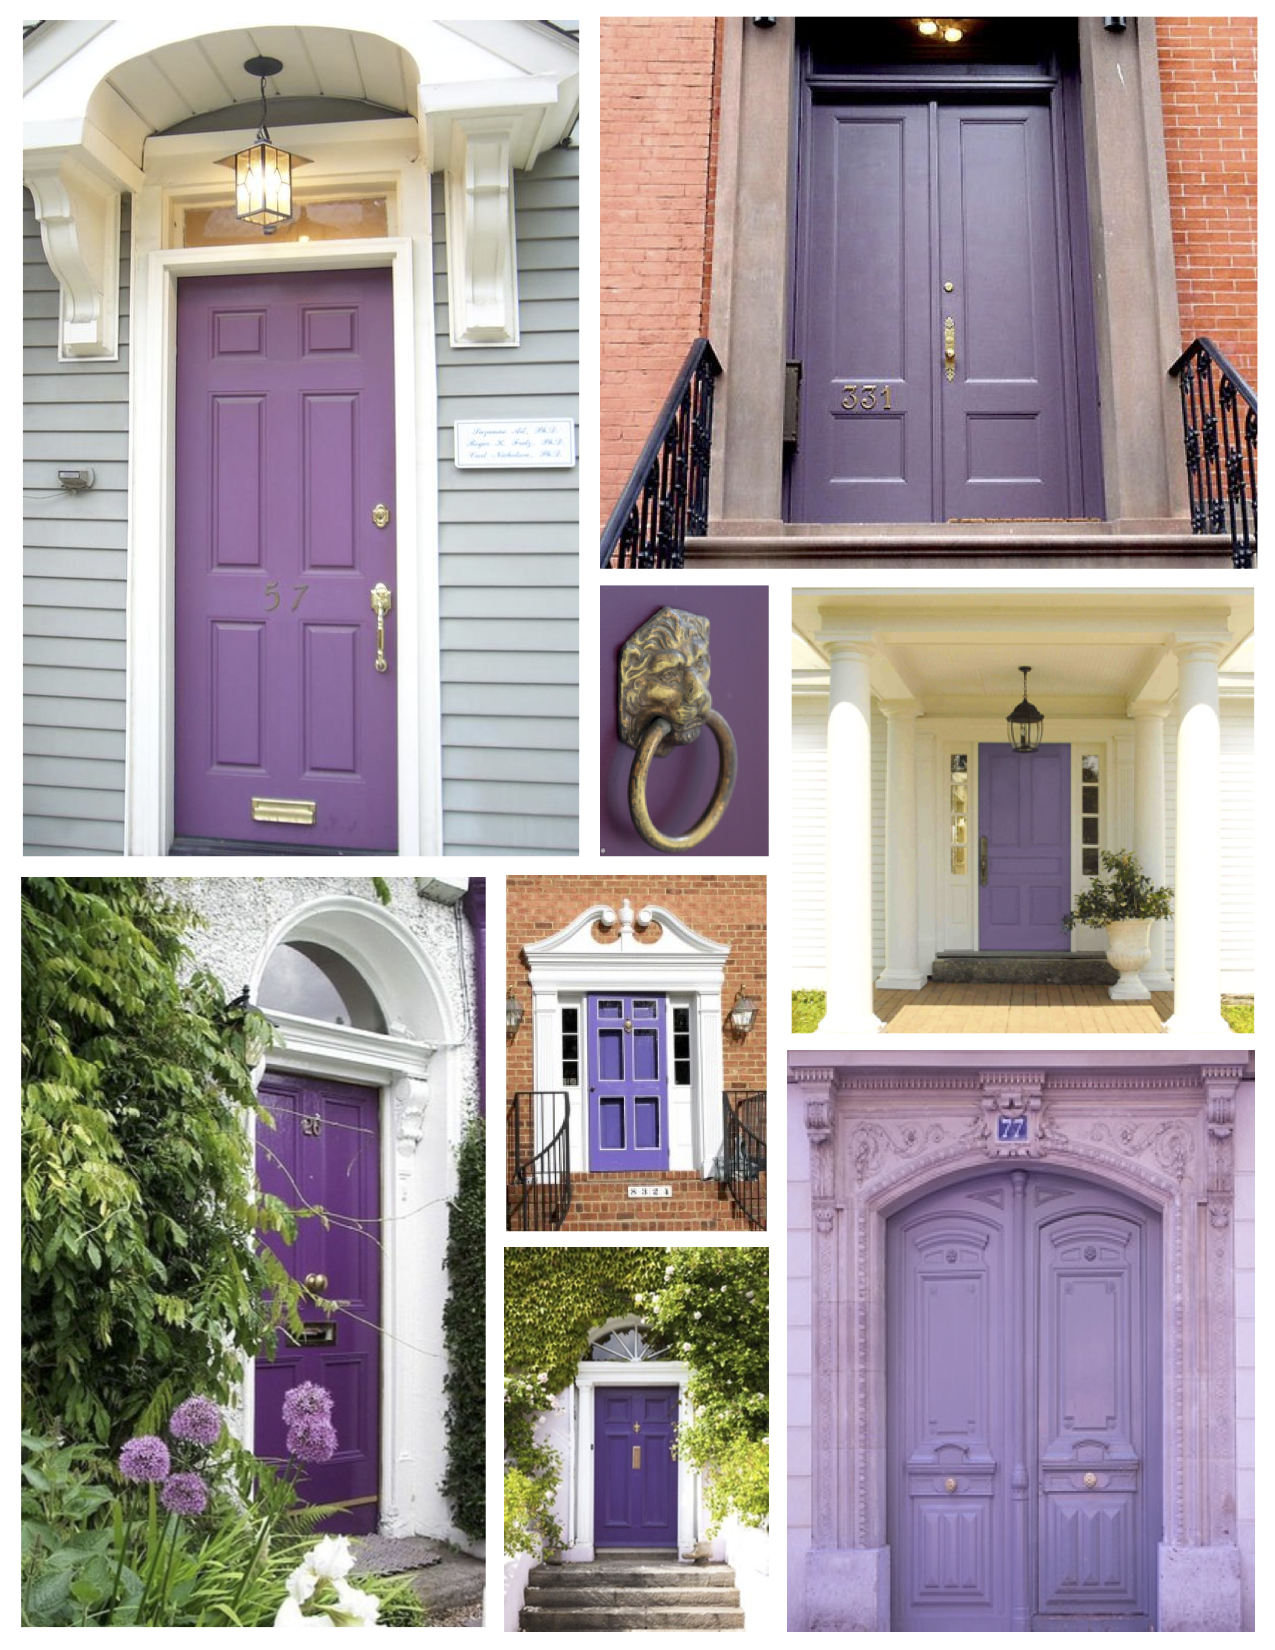 Exterior Color Inspirations | House Appeal | Page 2 on best exterior paint door, flat door, plain door, painting a purple door, spray paint exterior door, duron exterior paint blue door,